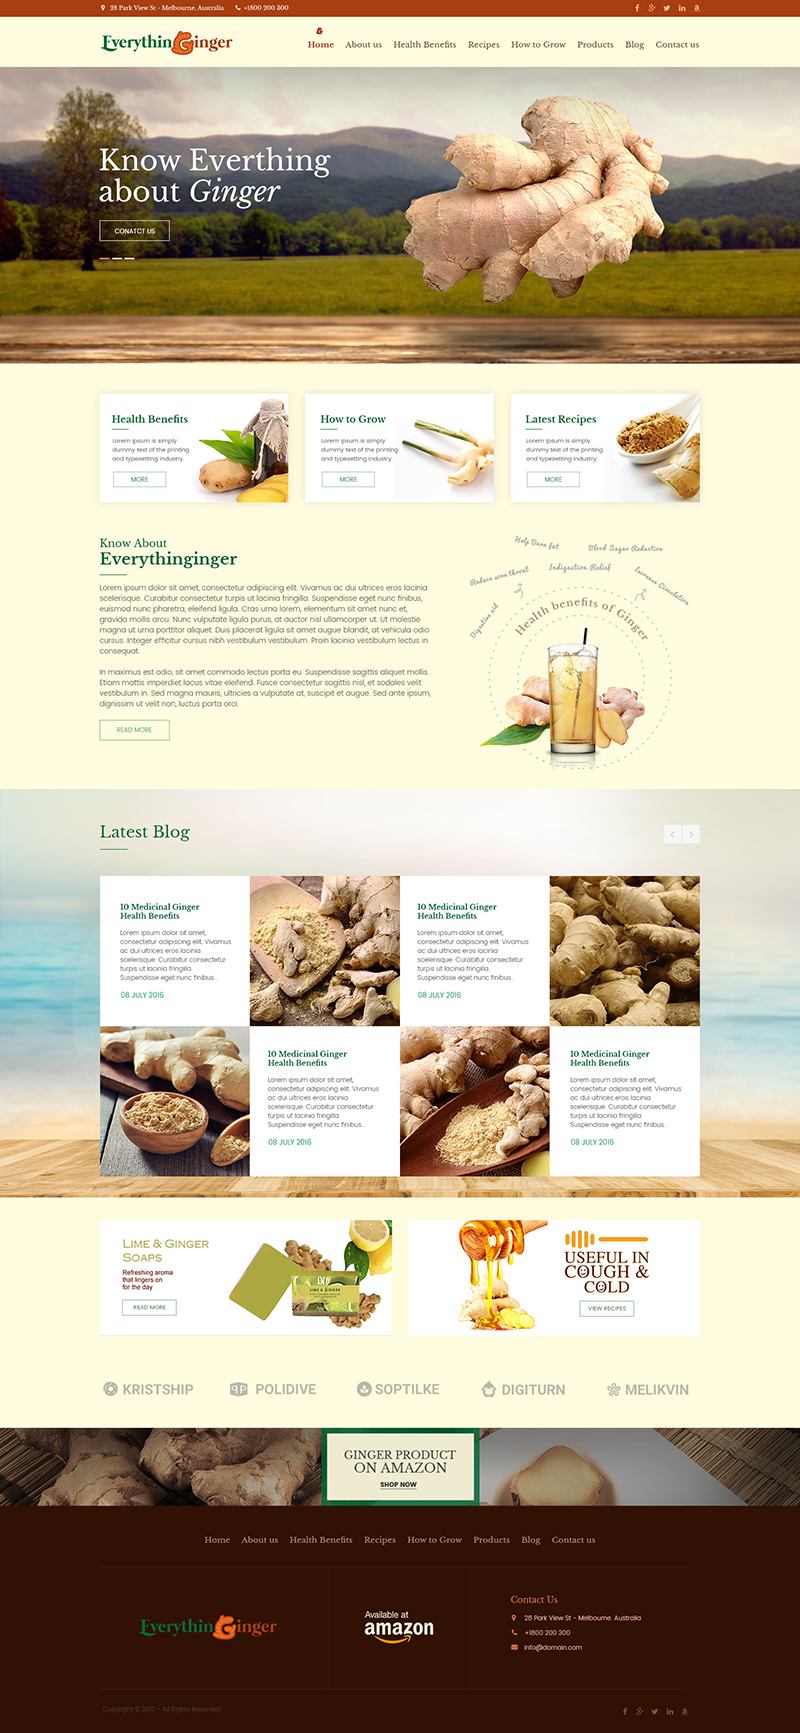 Custom Website Design for Everythin Ginger - Logo Design Deck